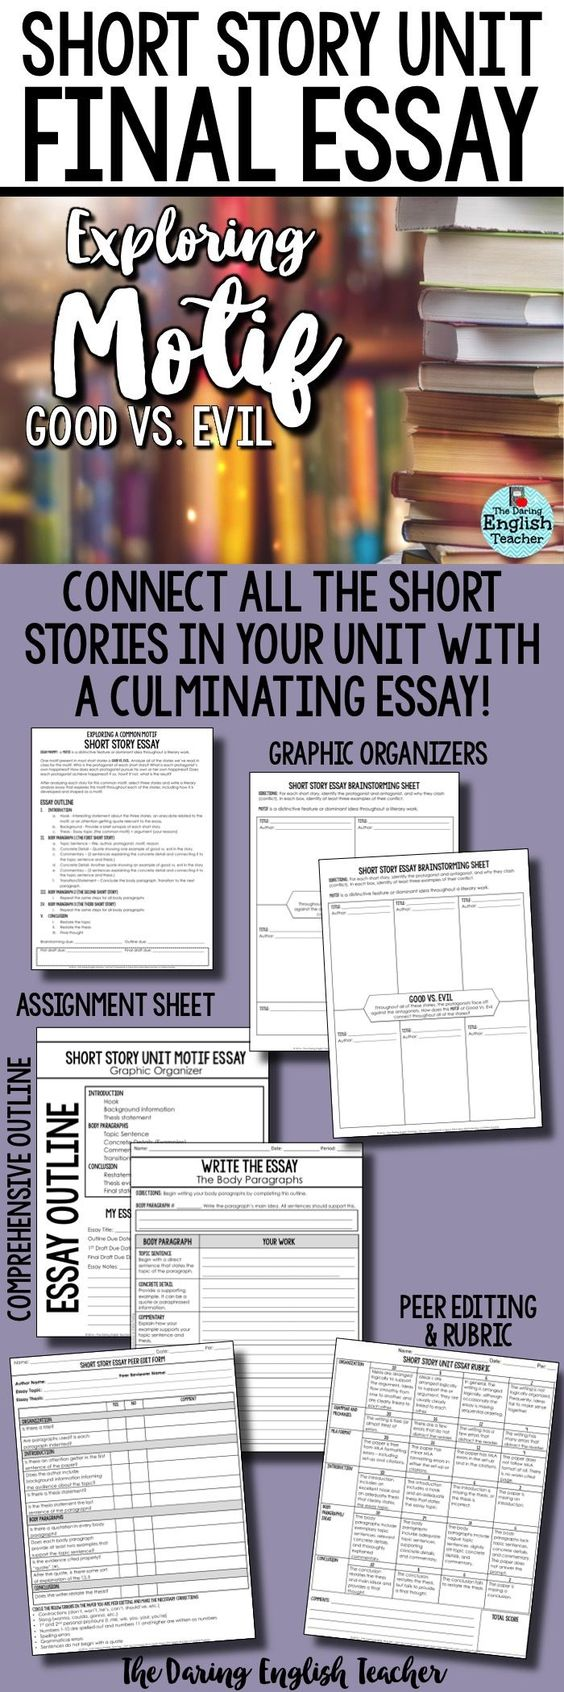 short story unit final essay  analyzing motif  good vs  evil